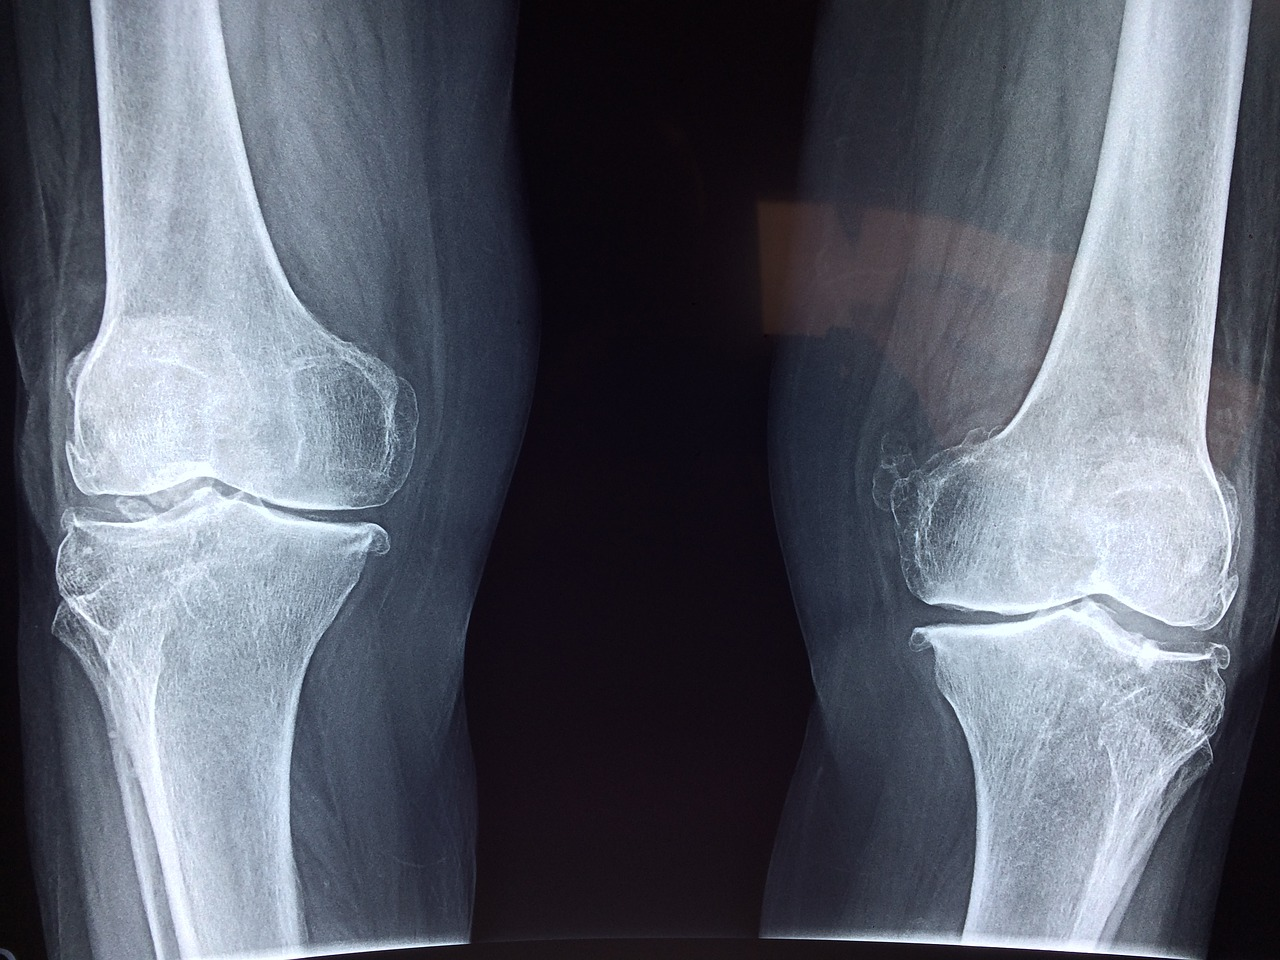 x-ray-of-the-knee